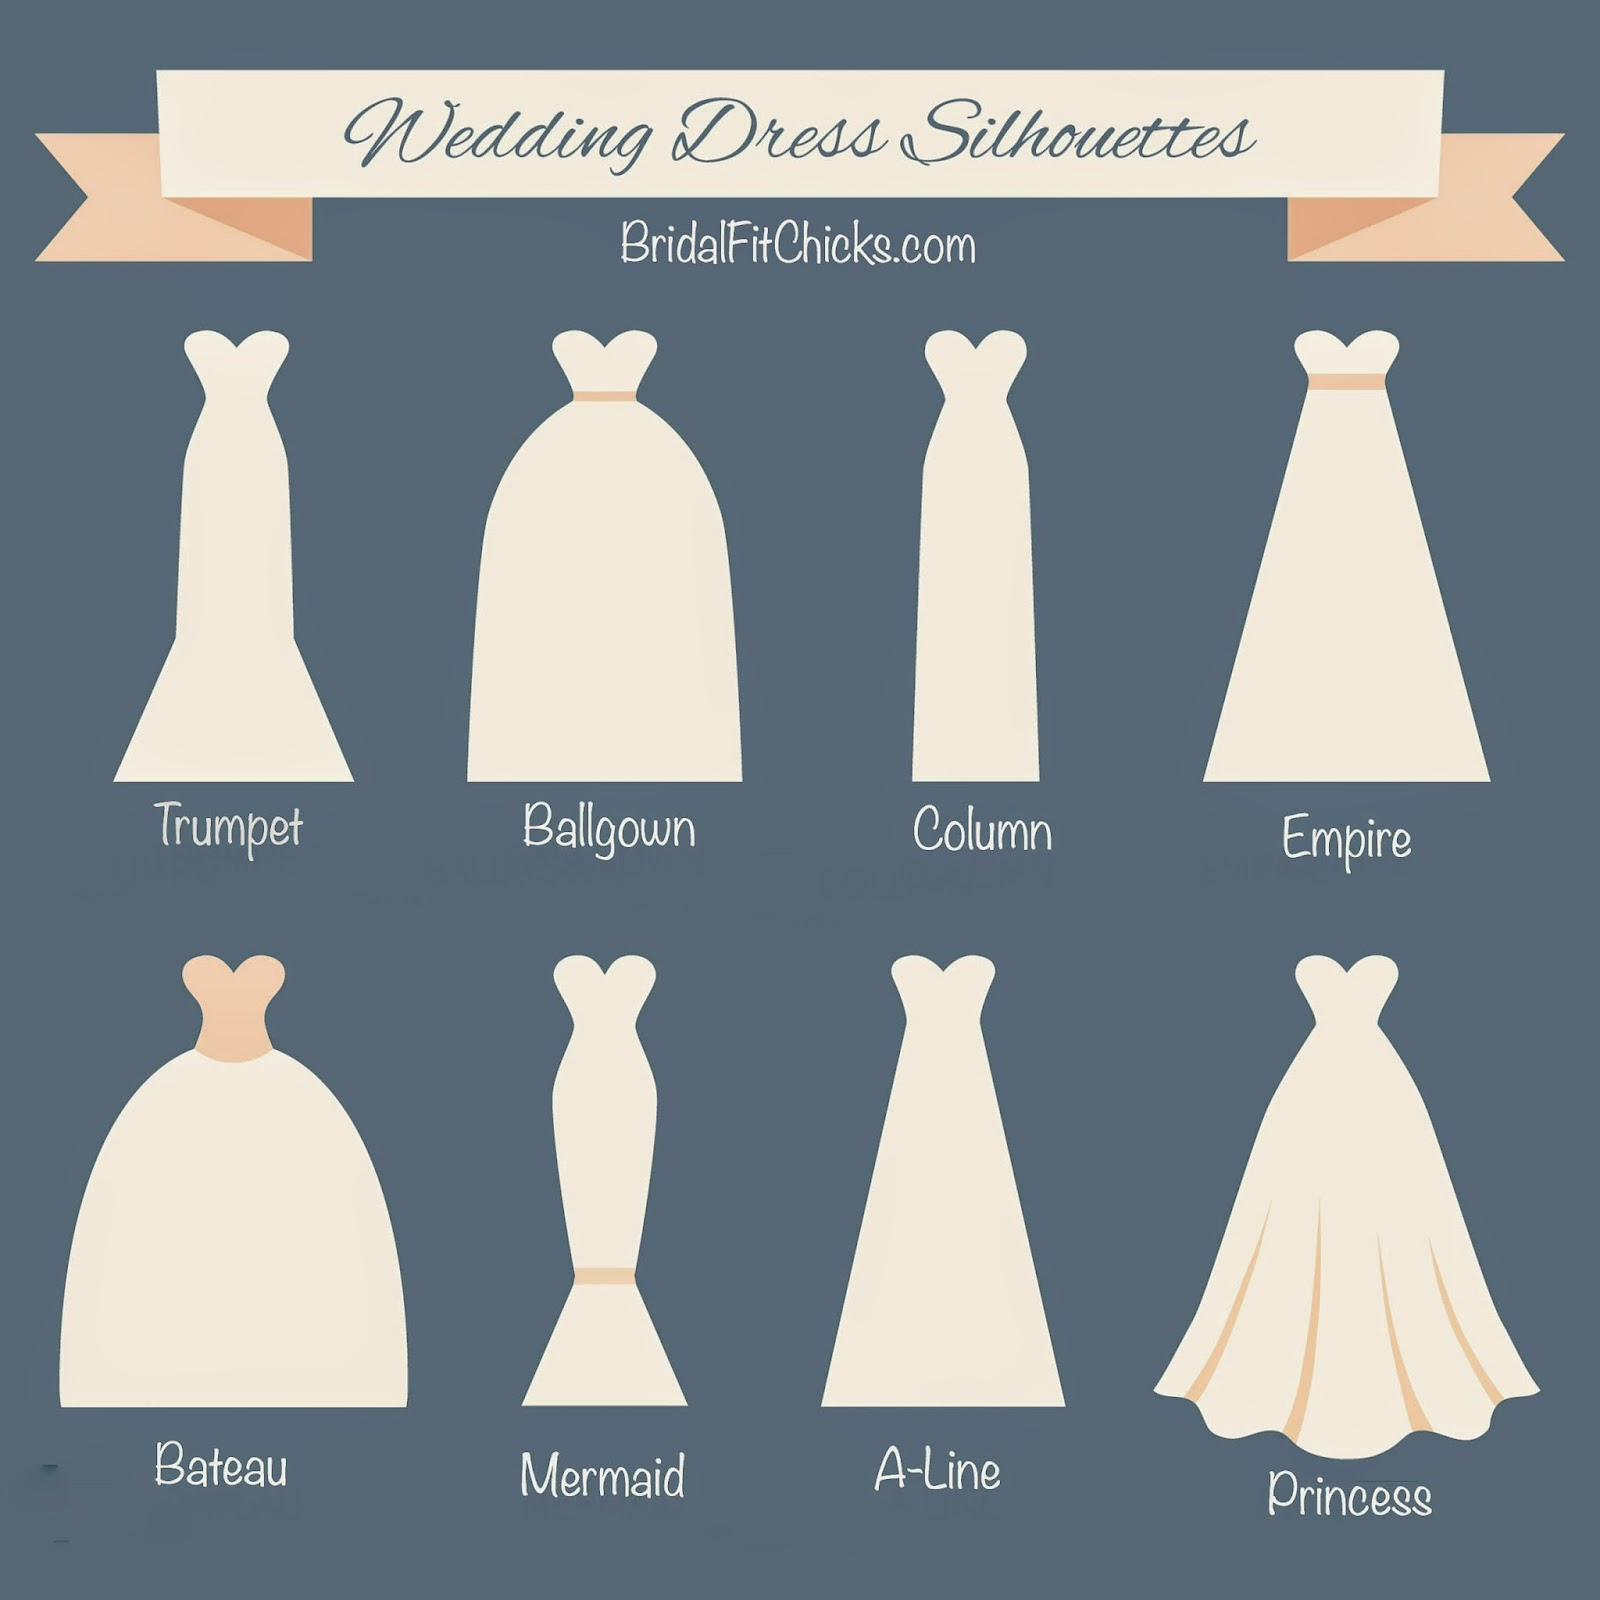 Bridal fit chicks a guide to shop for your perfect dress for Wedding dress size guide